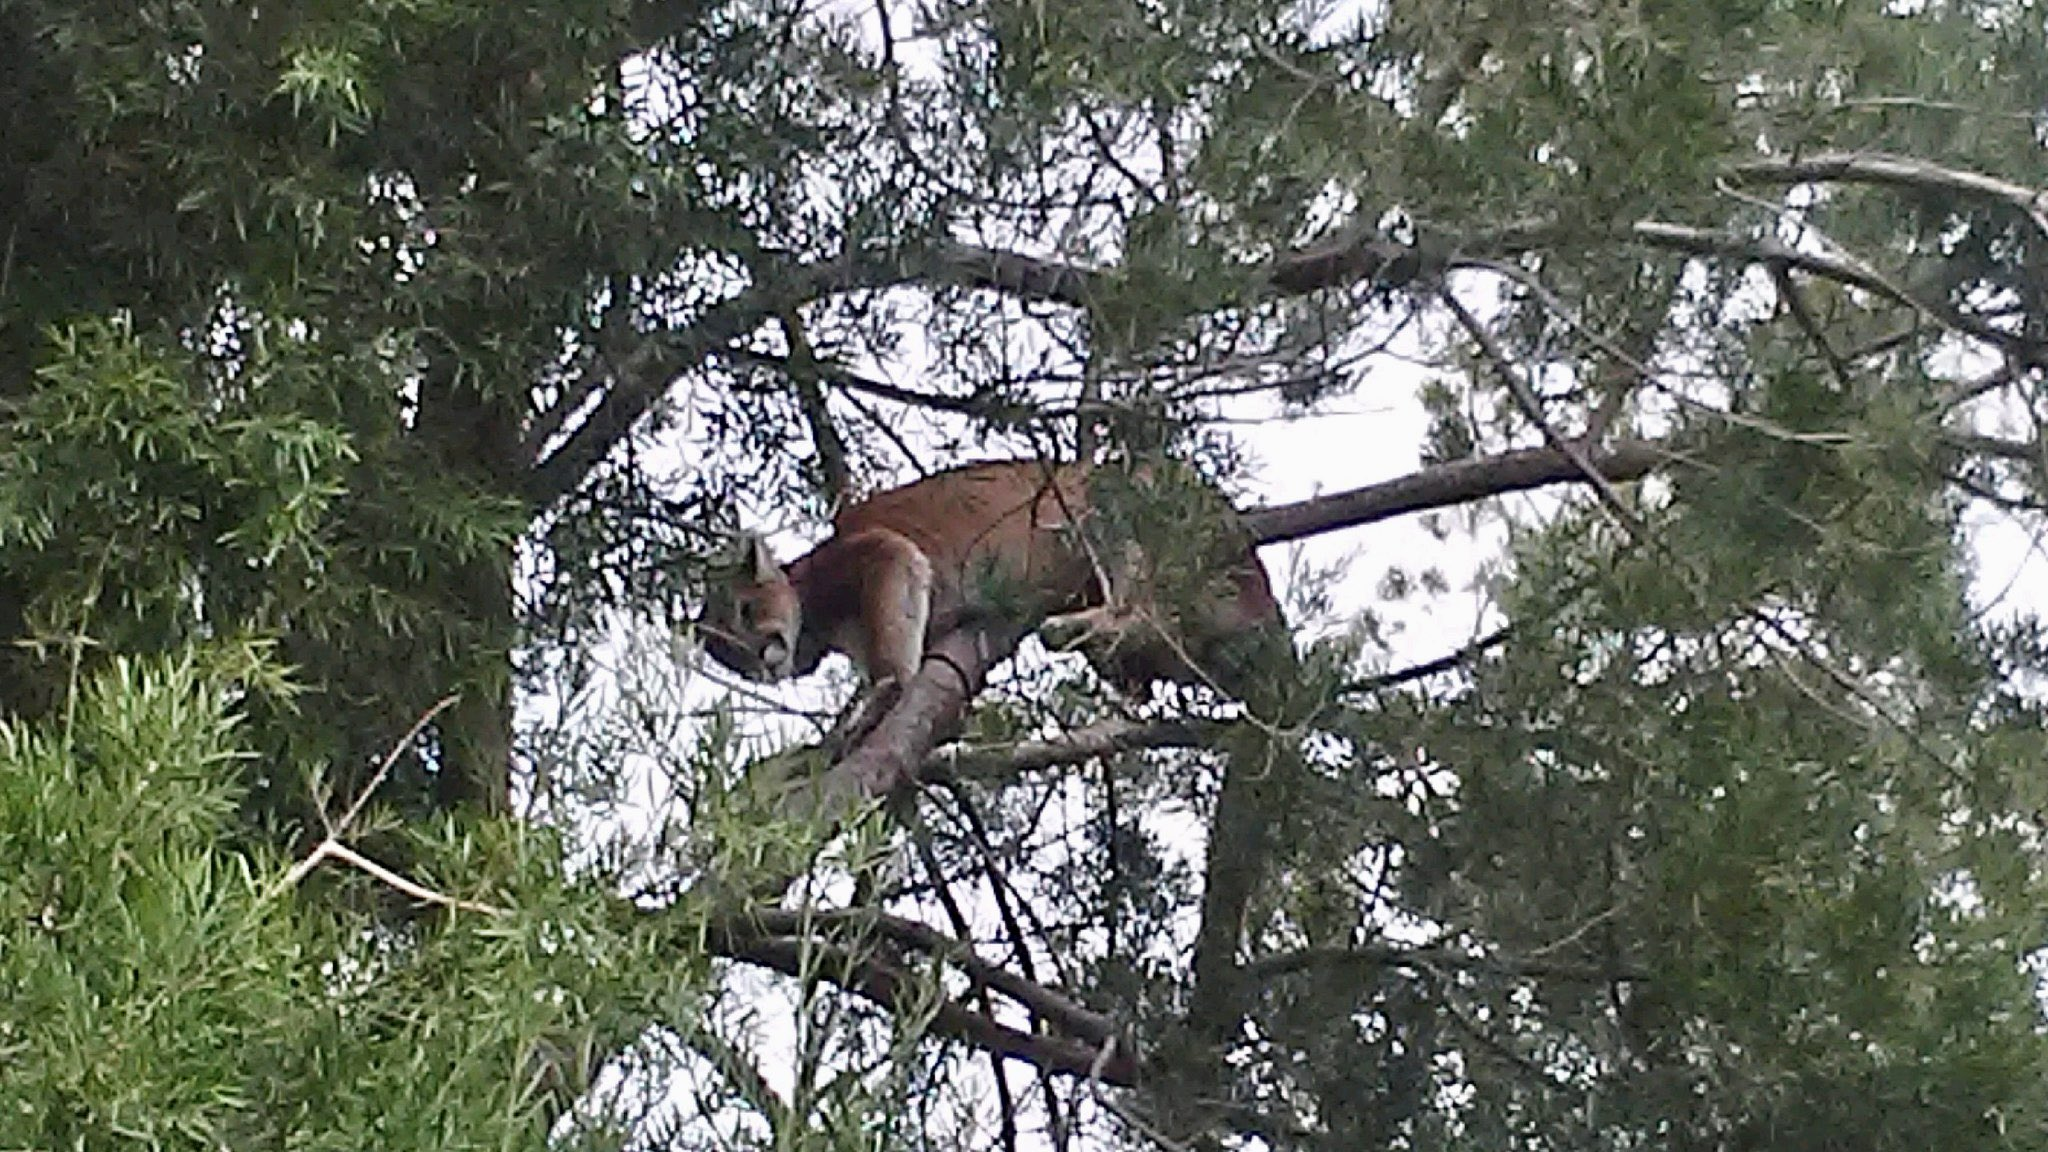 A mountain lion spotted in a tree in Agoura Hills on Oct. 24, 2020. (LASD Lost Hills Station/Twitter)